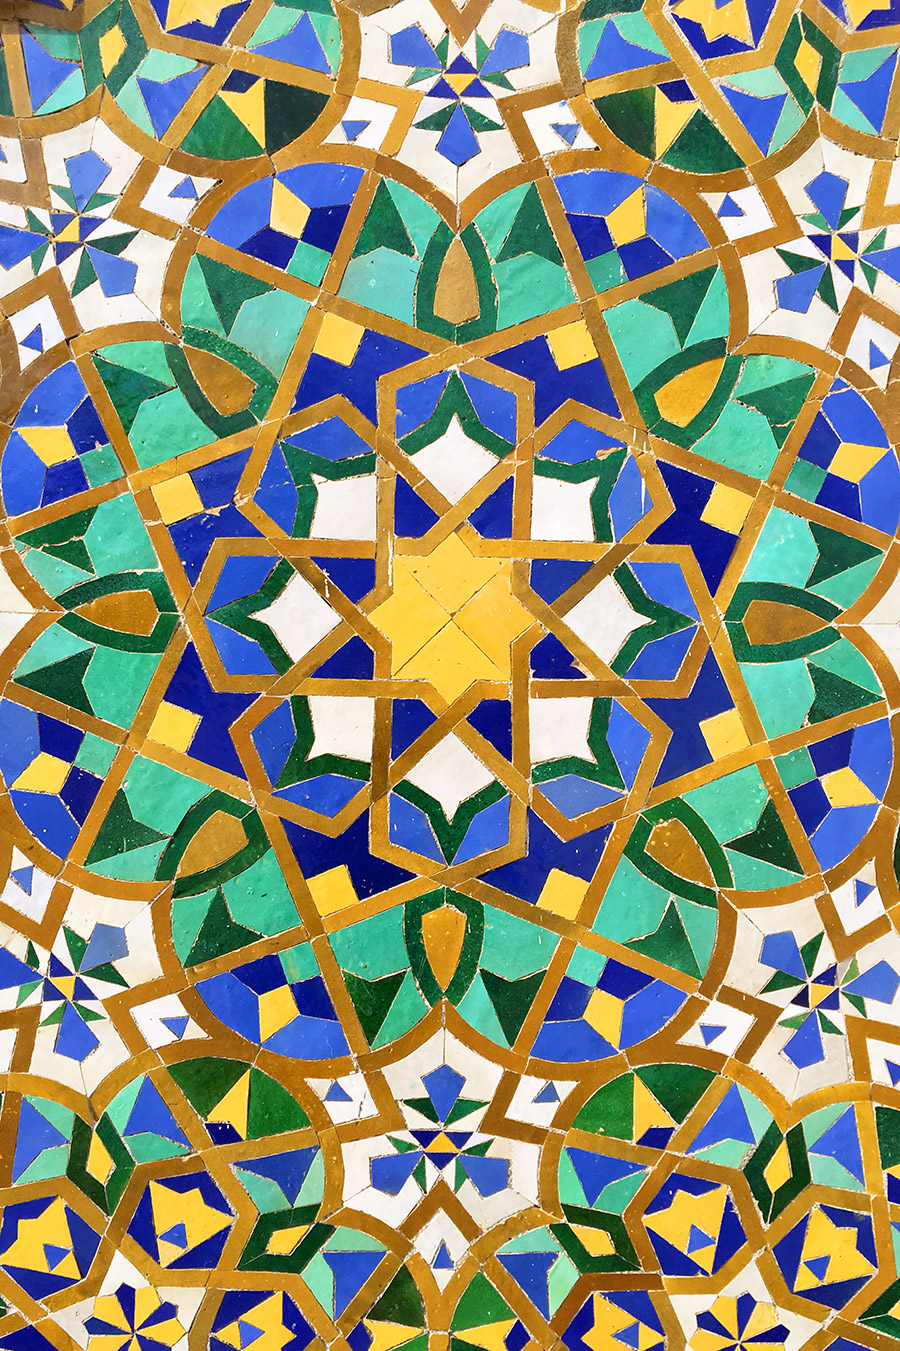 Searching for Patterns in Morocco | shannonmcnab.com